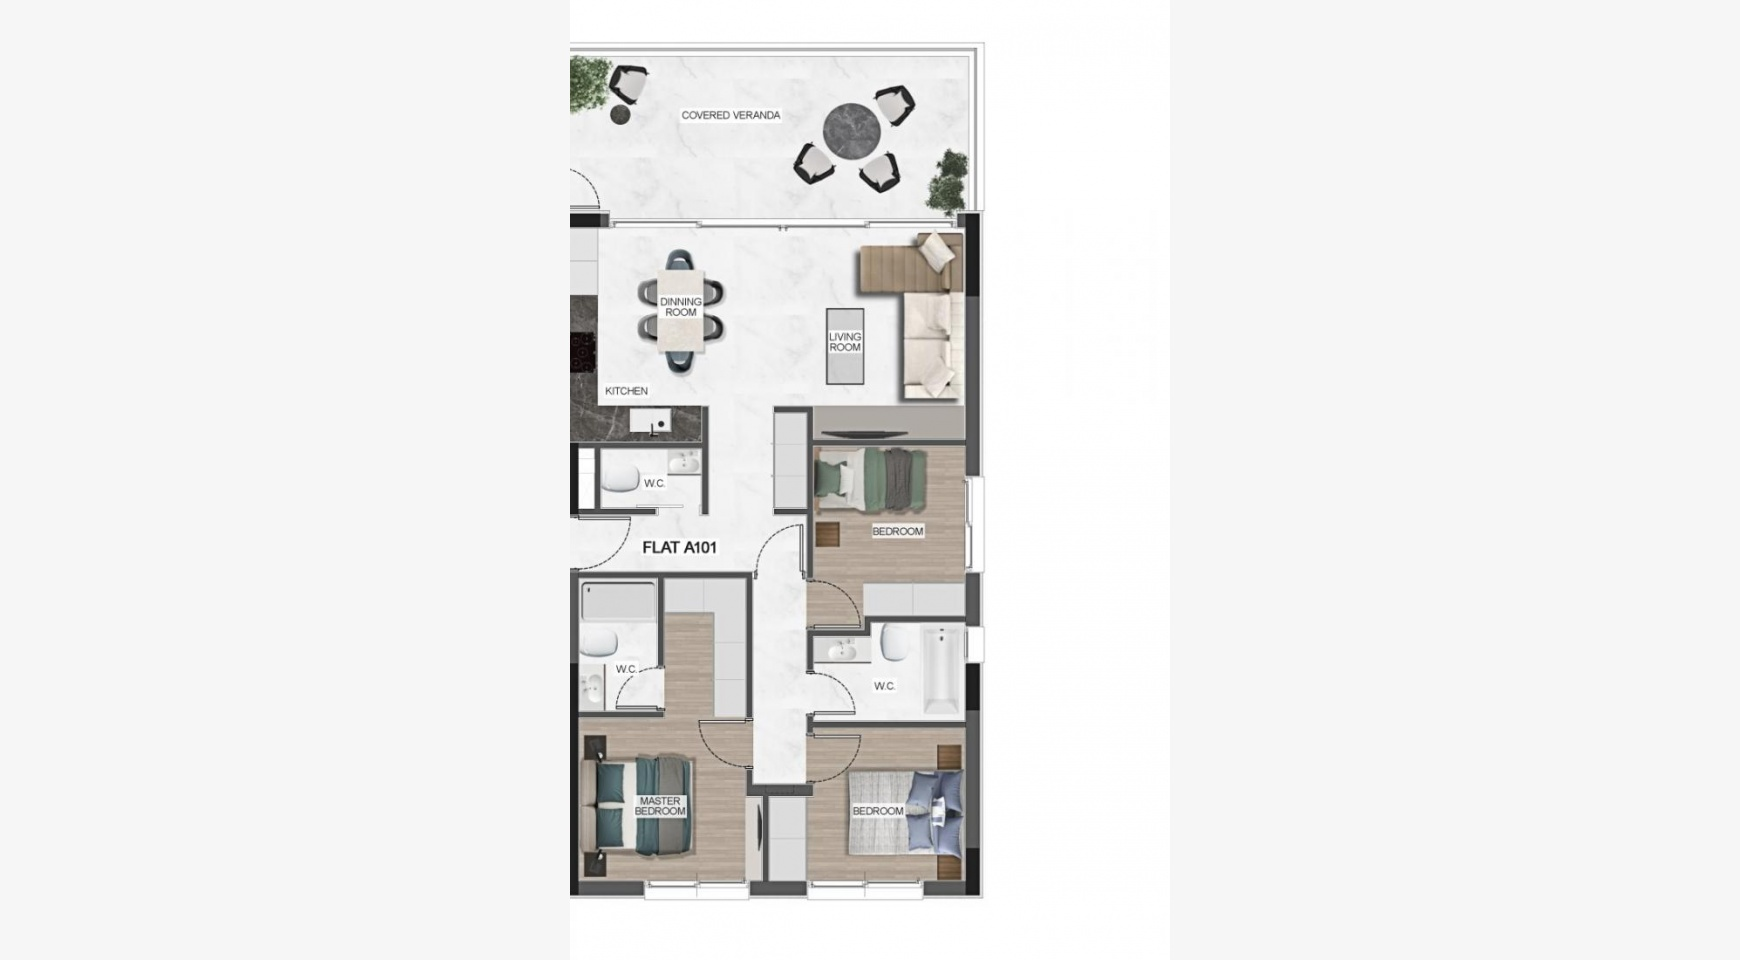 Urban City Residences, Block A. New Spacious 3 Bedroom Apartment 401 in the City Centre - 41